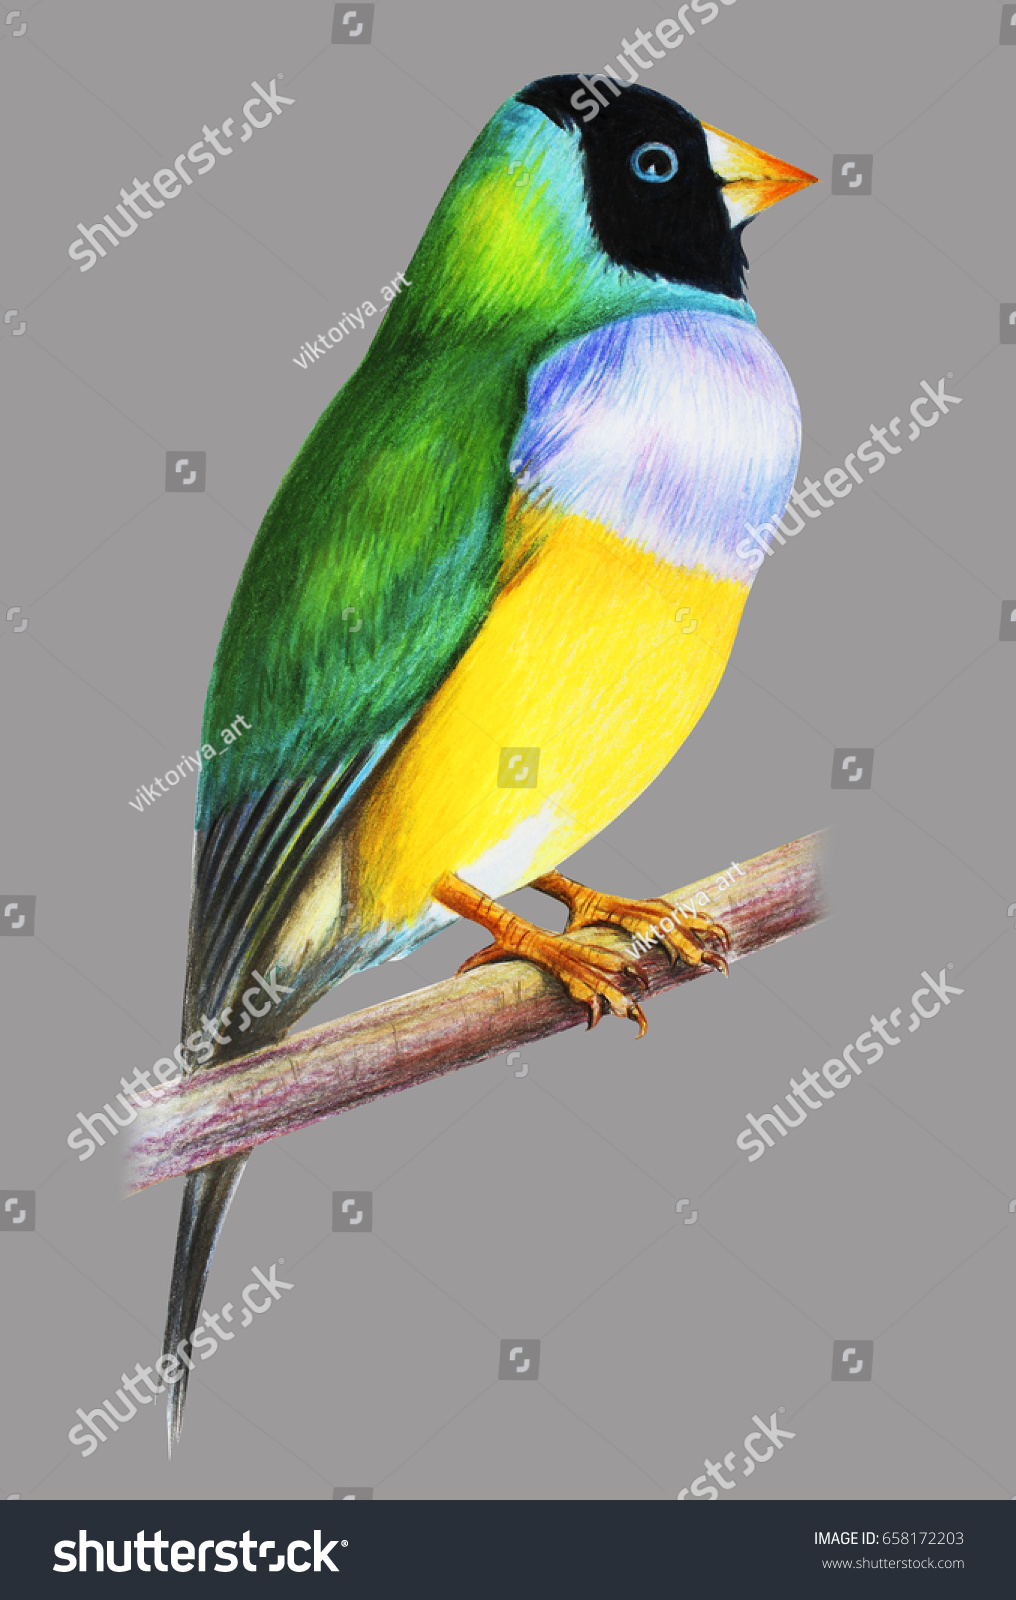 Gouldian finch bird on gray background stock illustration gouldian finch bird on gray background biocorpaavc